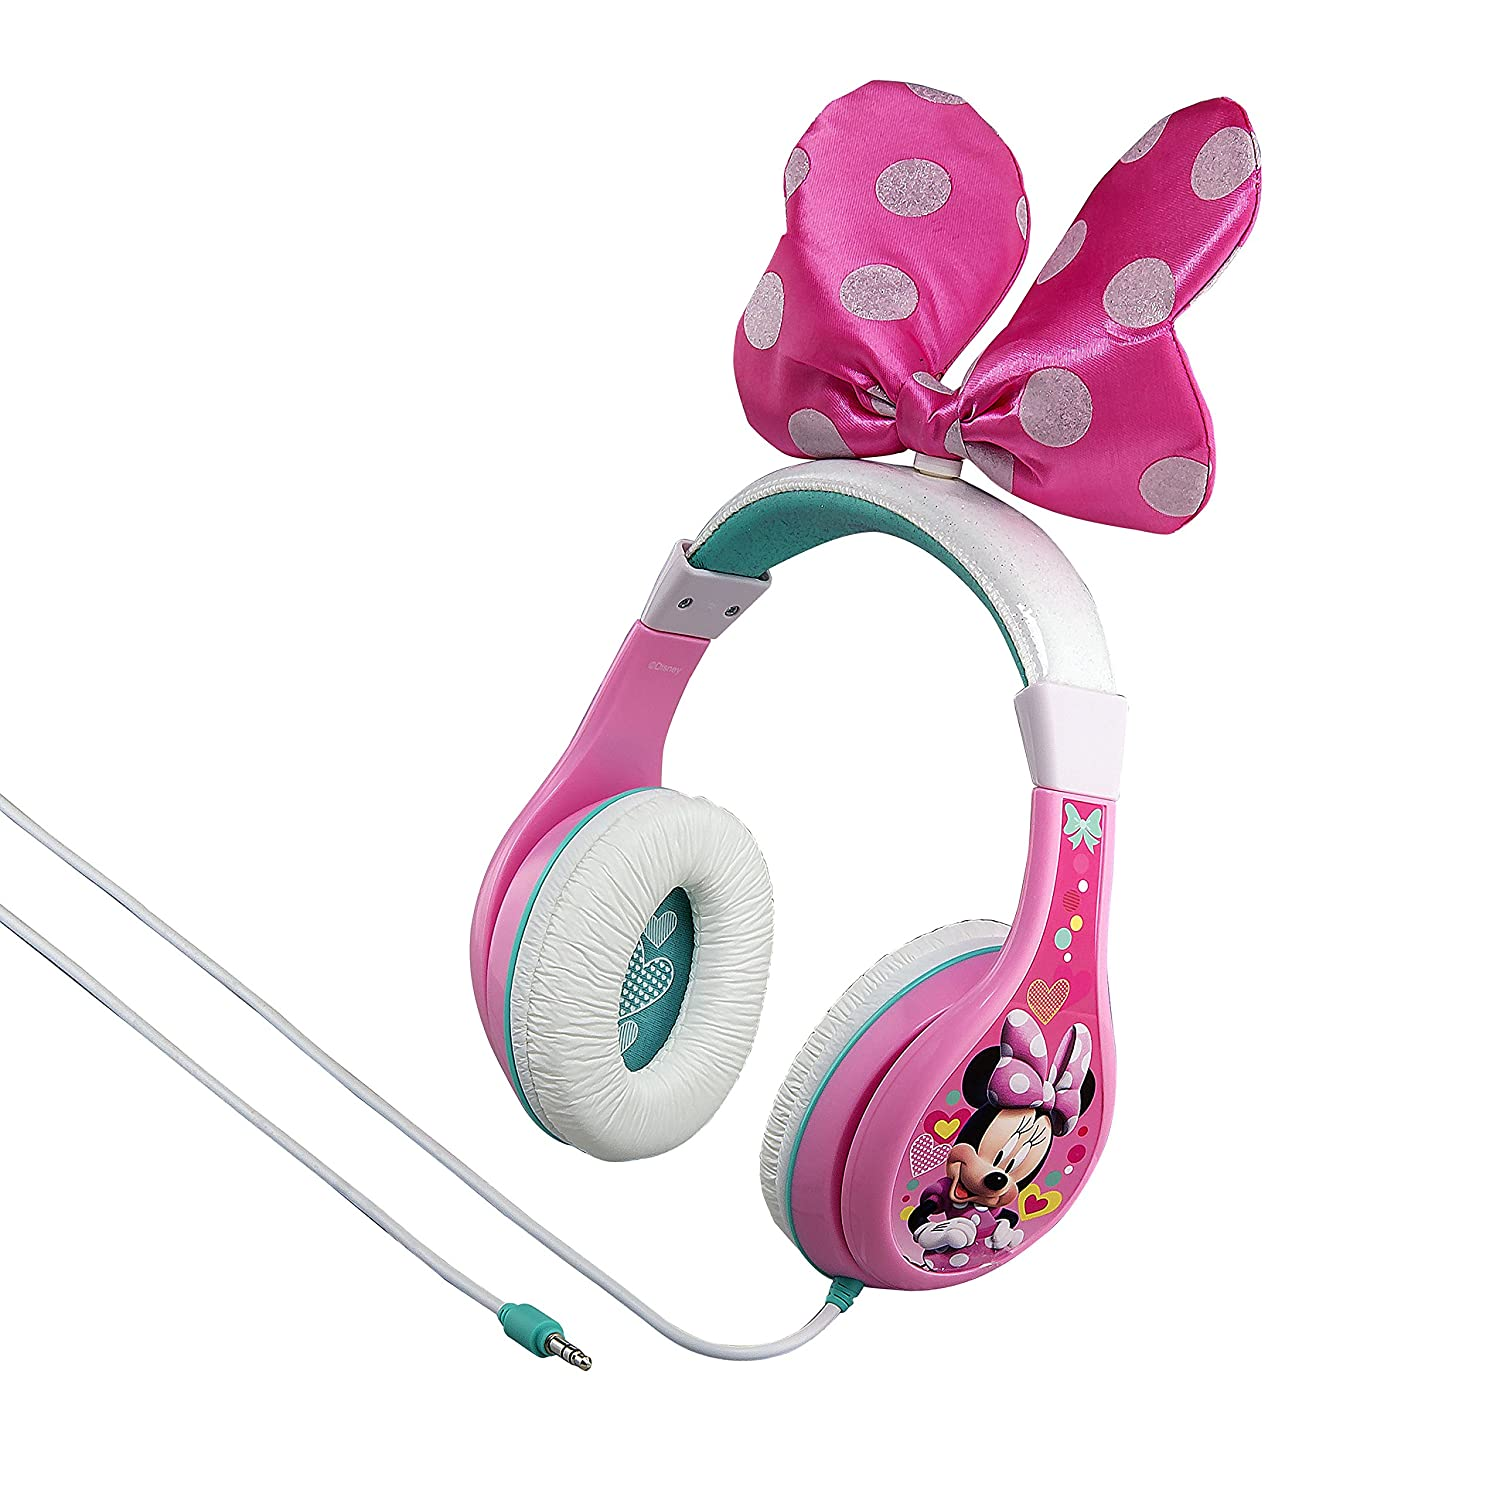 Minnie Mouse Headphones for Kids with Built in Volume Limiting Feature for Kid Friendly Safe Listening